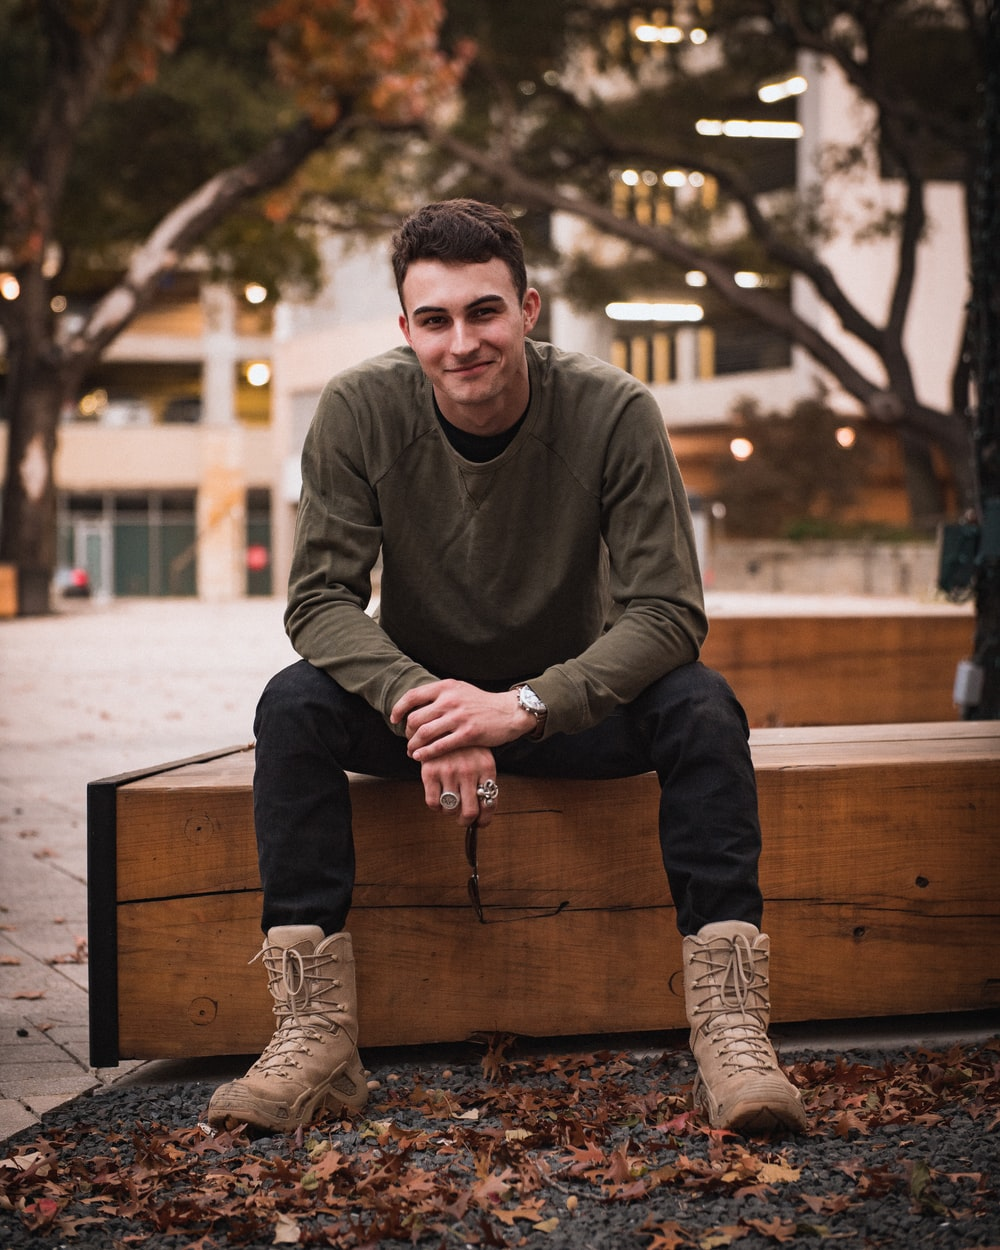 man in gray sweater sitting on brown wooden bench during daytime